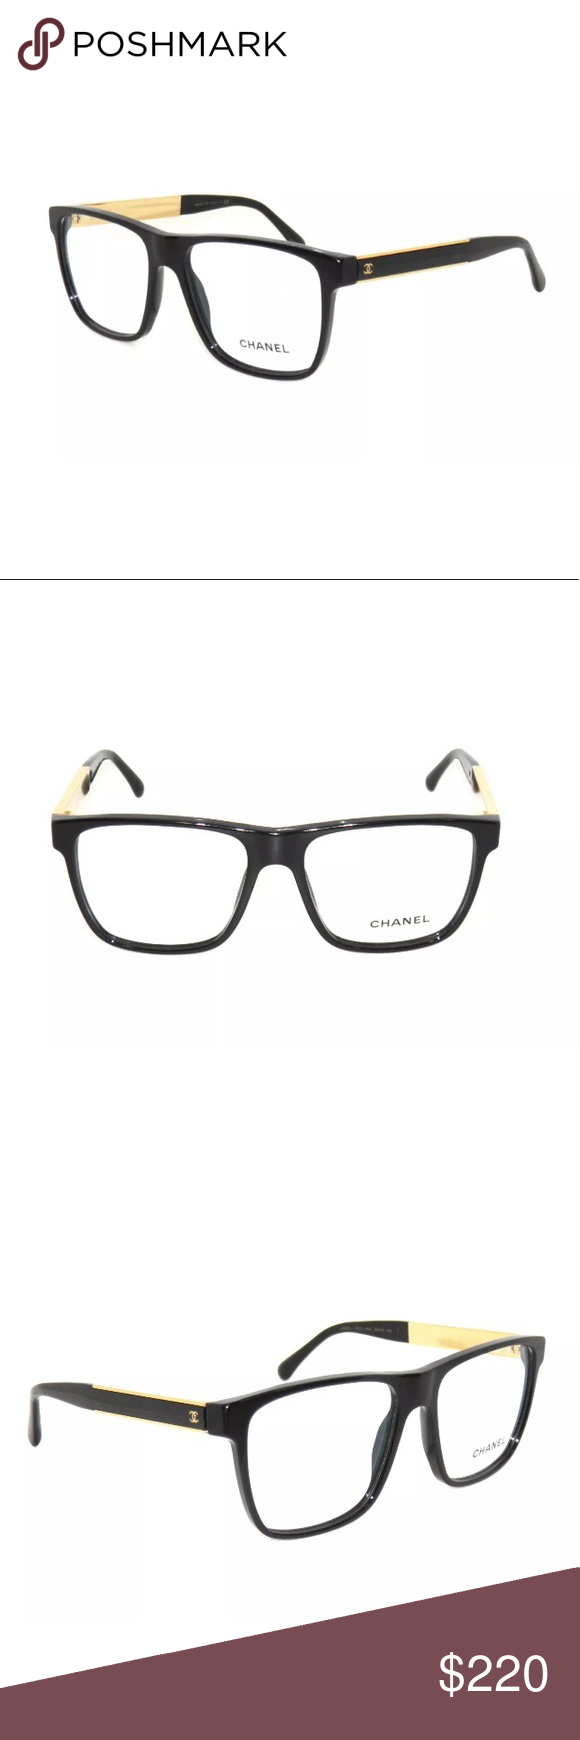 2d77aa52b4977 Chanel 3276 Eyeglasses Black And Gold Frame 55mm Excellent Condition ...